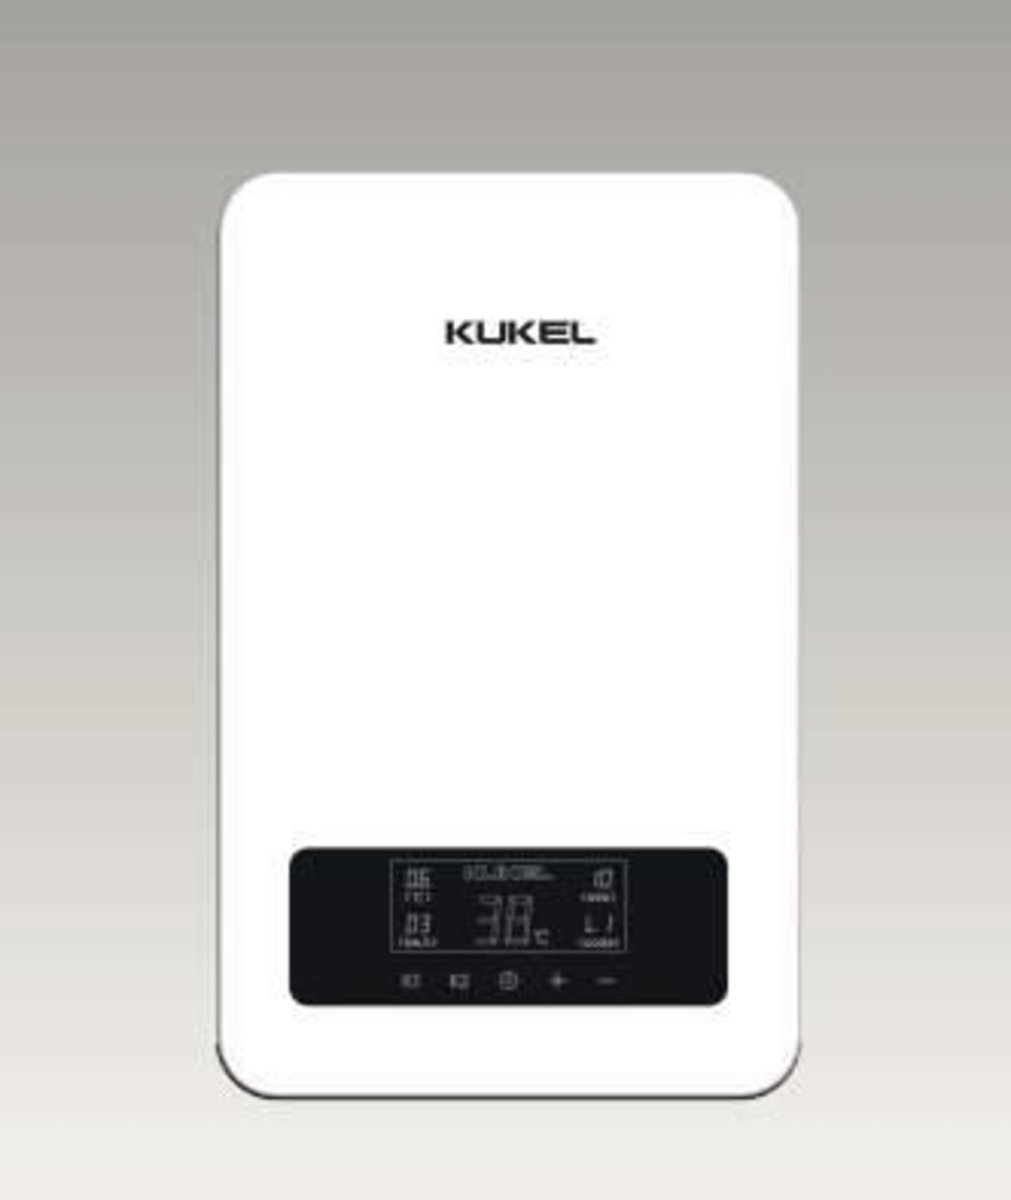 Porcelain-Energy instantaneous thermostat water heater 6.6kw for shower (KUL59-828-6.6kw)